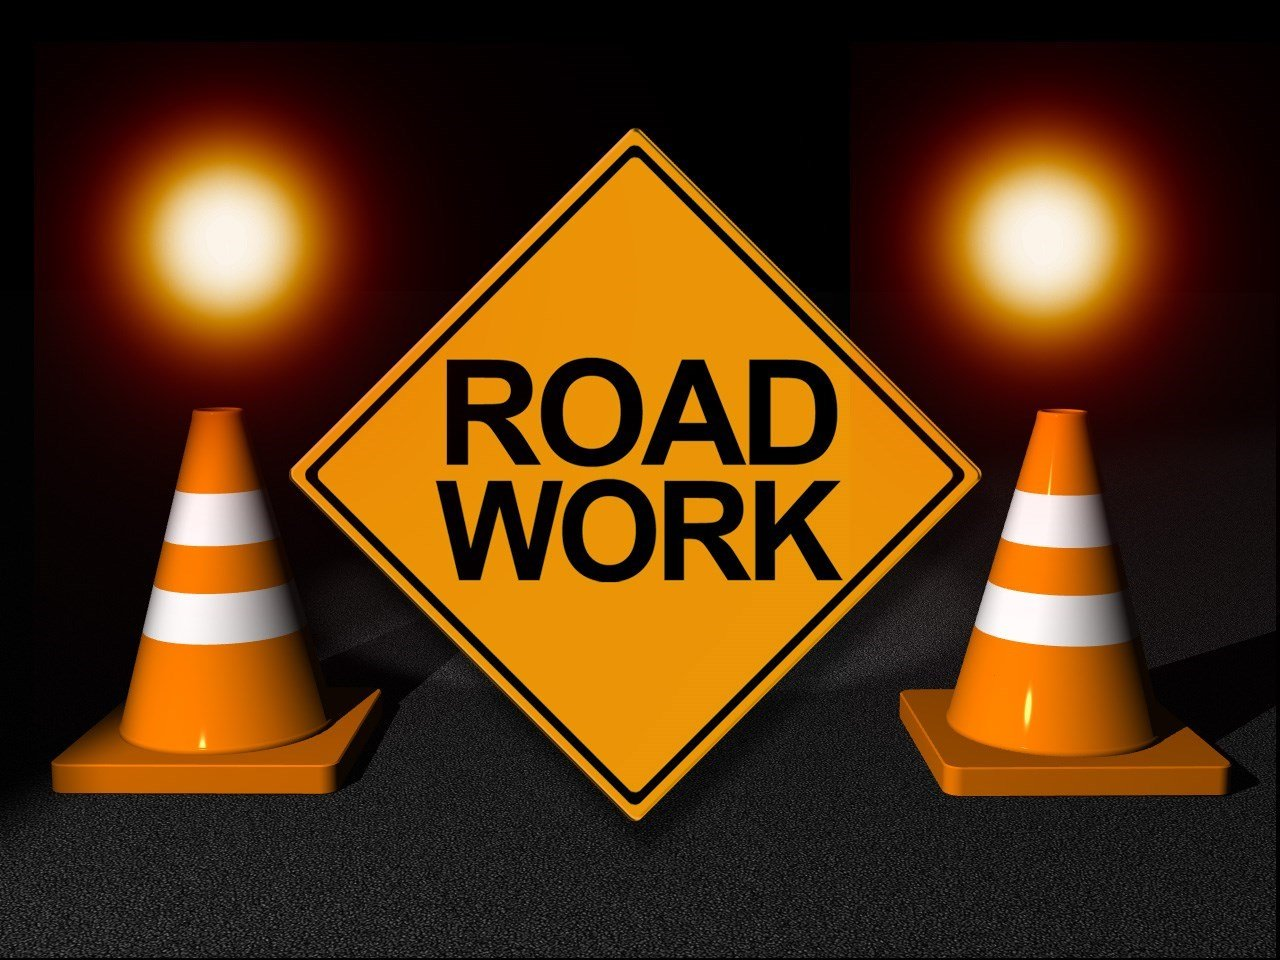 williams dr utility work will affect traffic starting friday drivers are advised to avoid the areas affected by the williams drive improvement project which